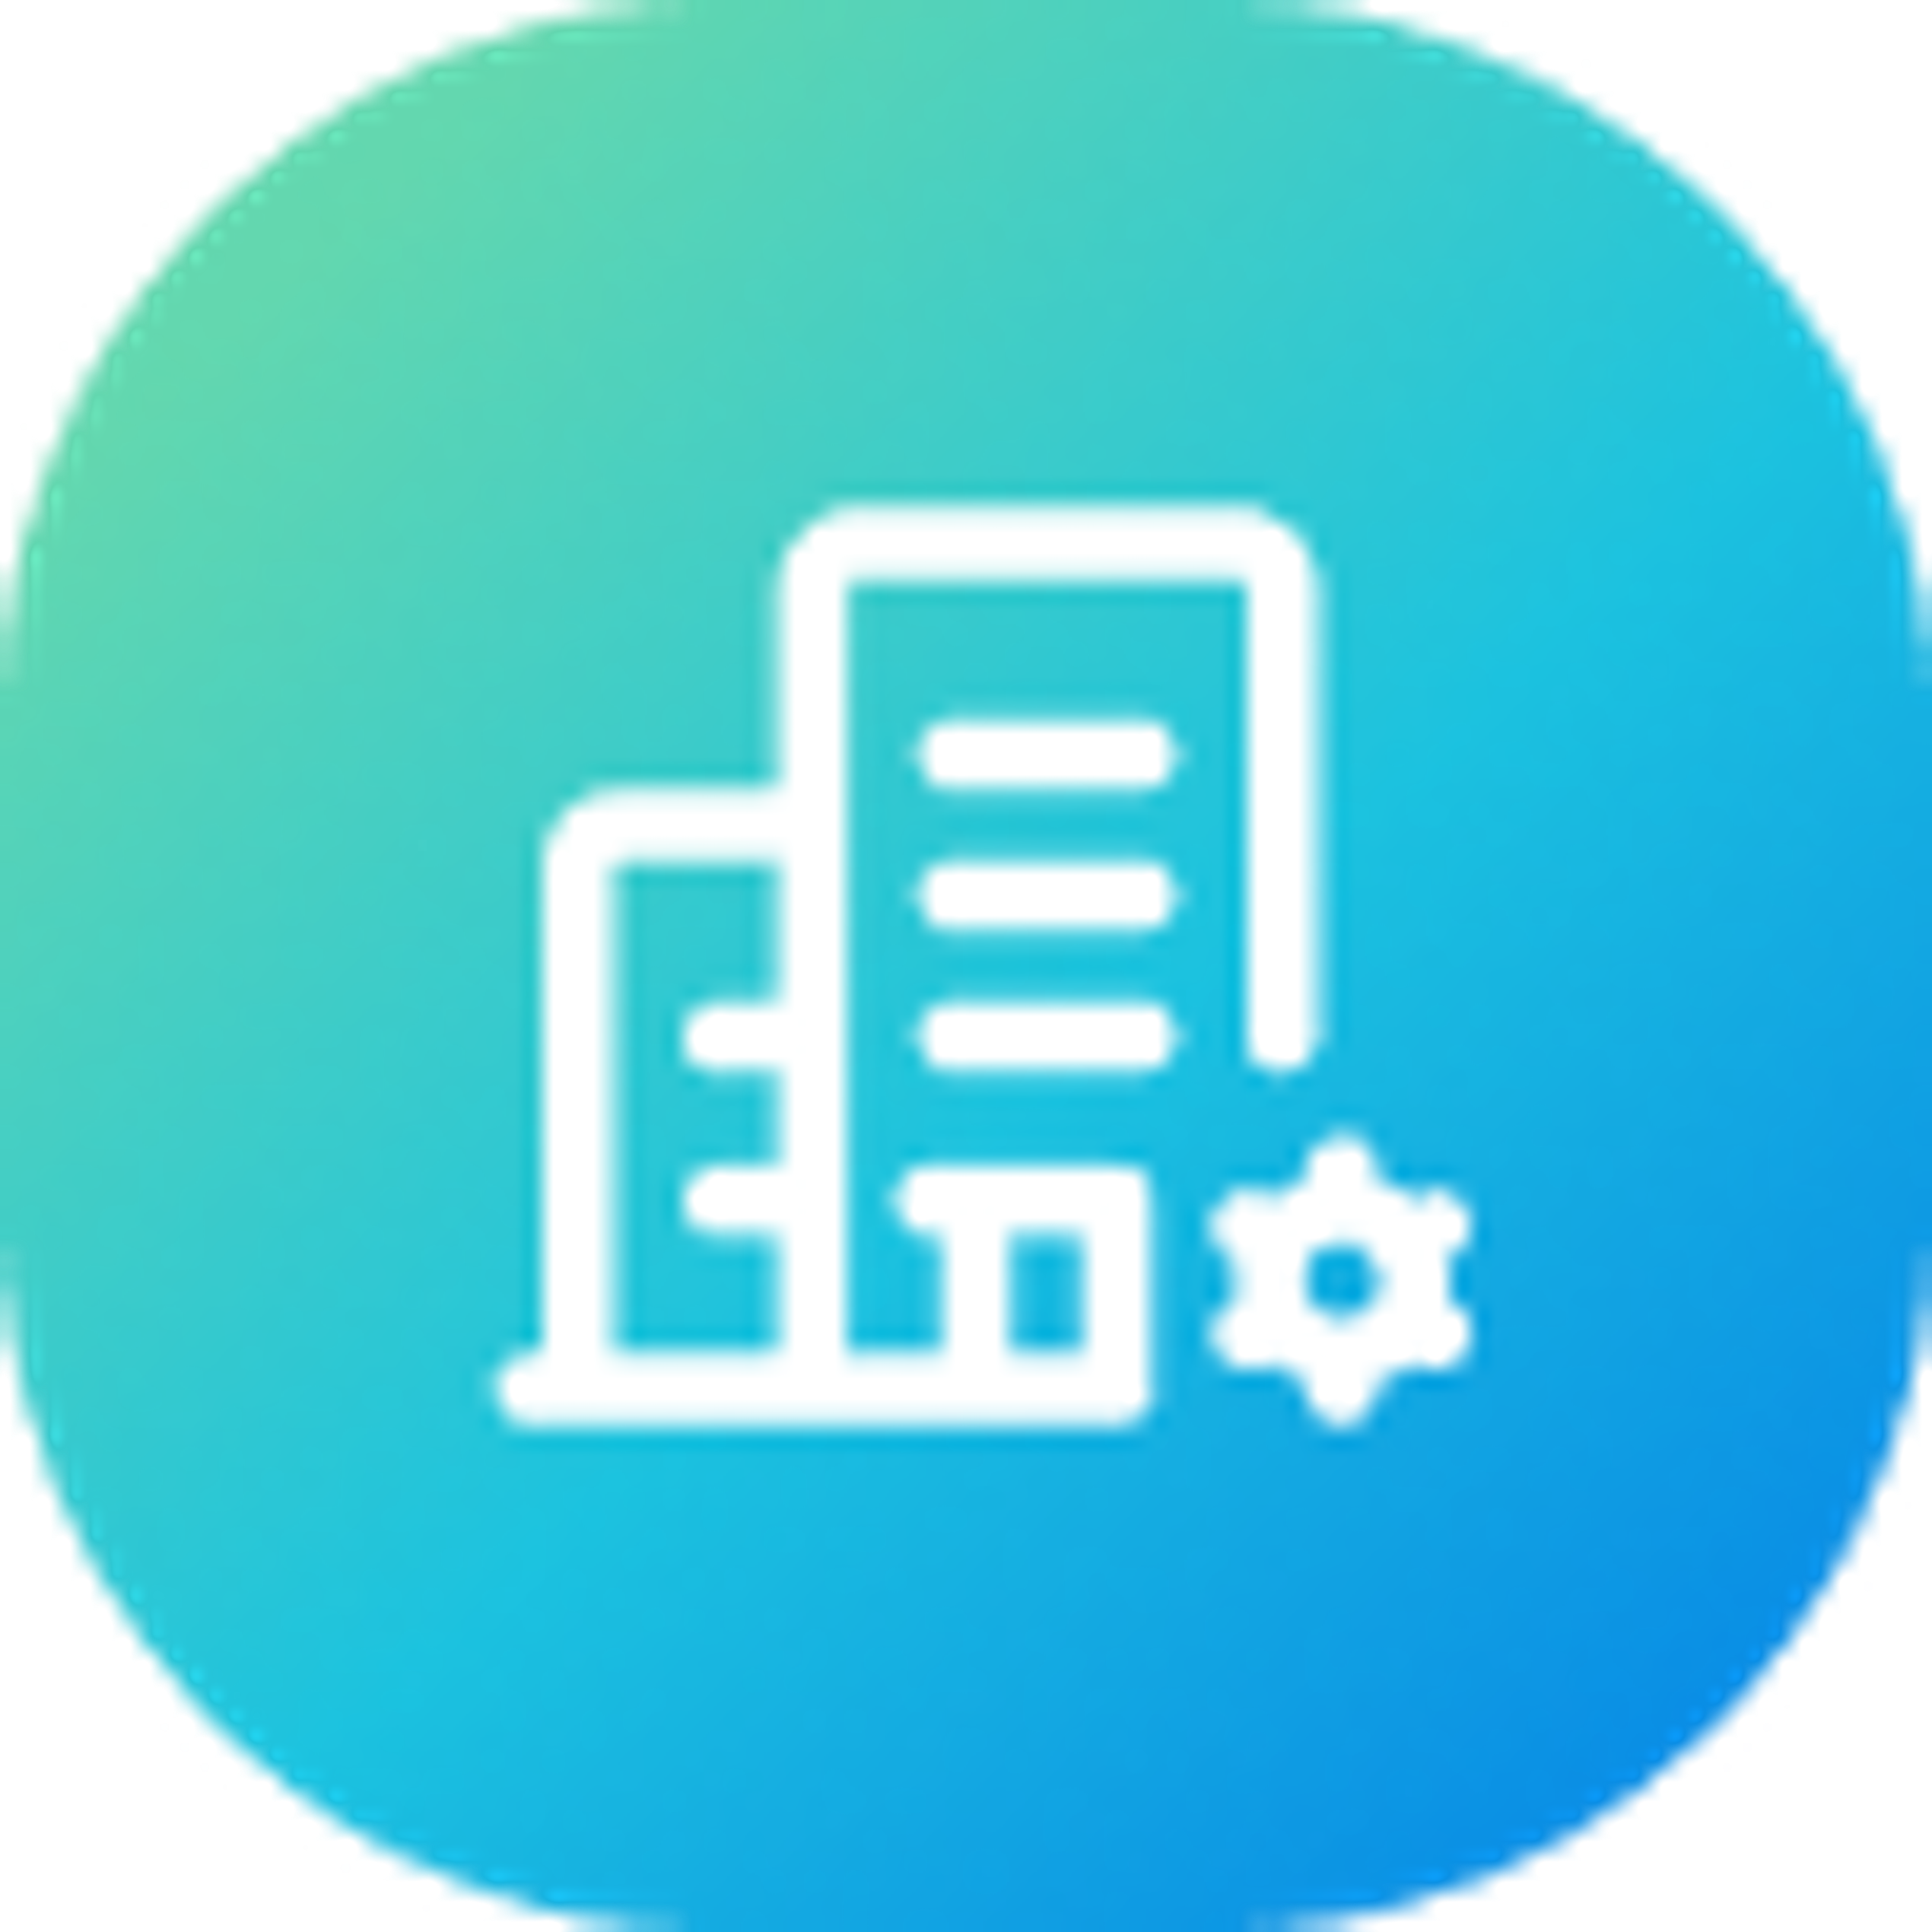 Management, communication and accounting tools to simplify your daily tasks.